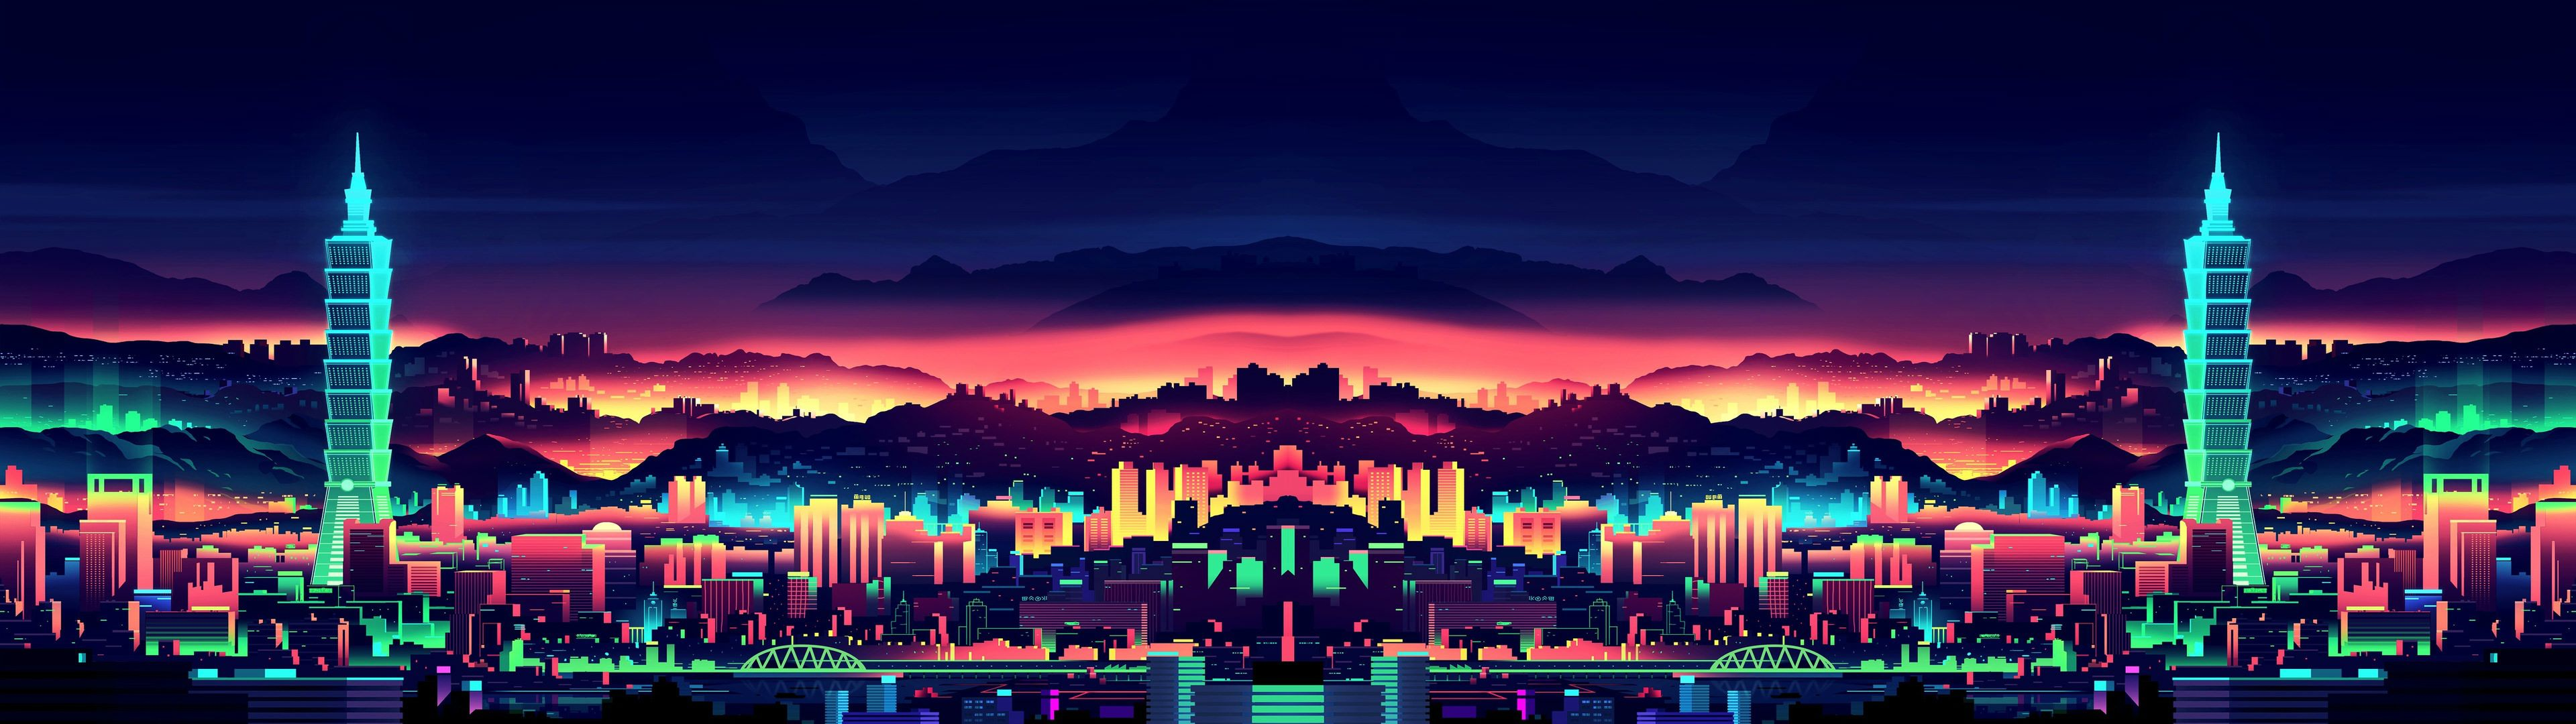 Neon city 3840x1080 wallpaper (1920x1080 versions included